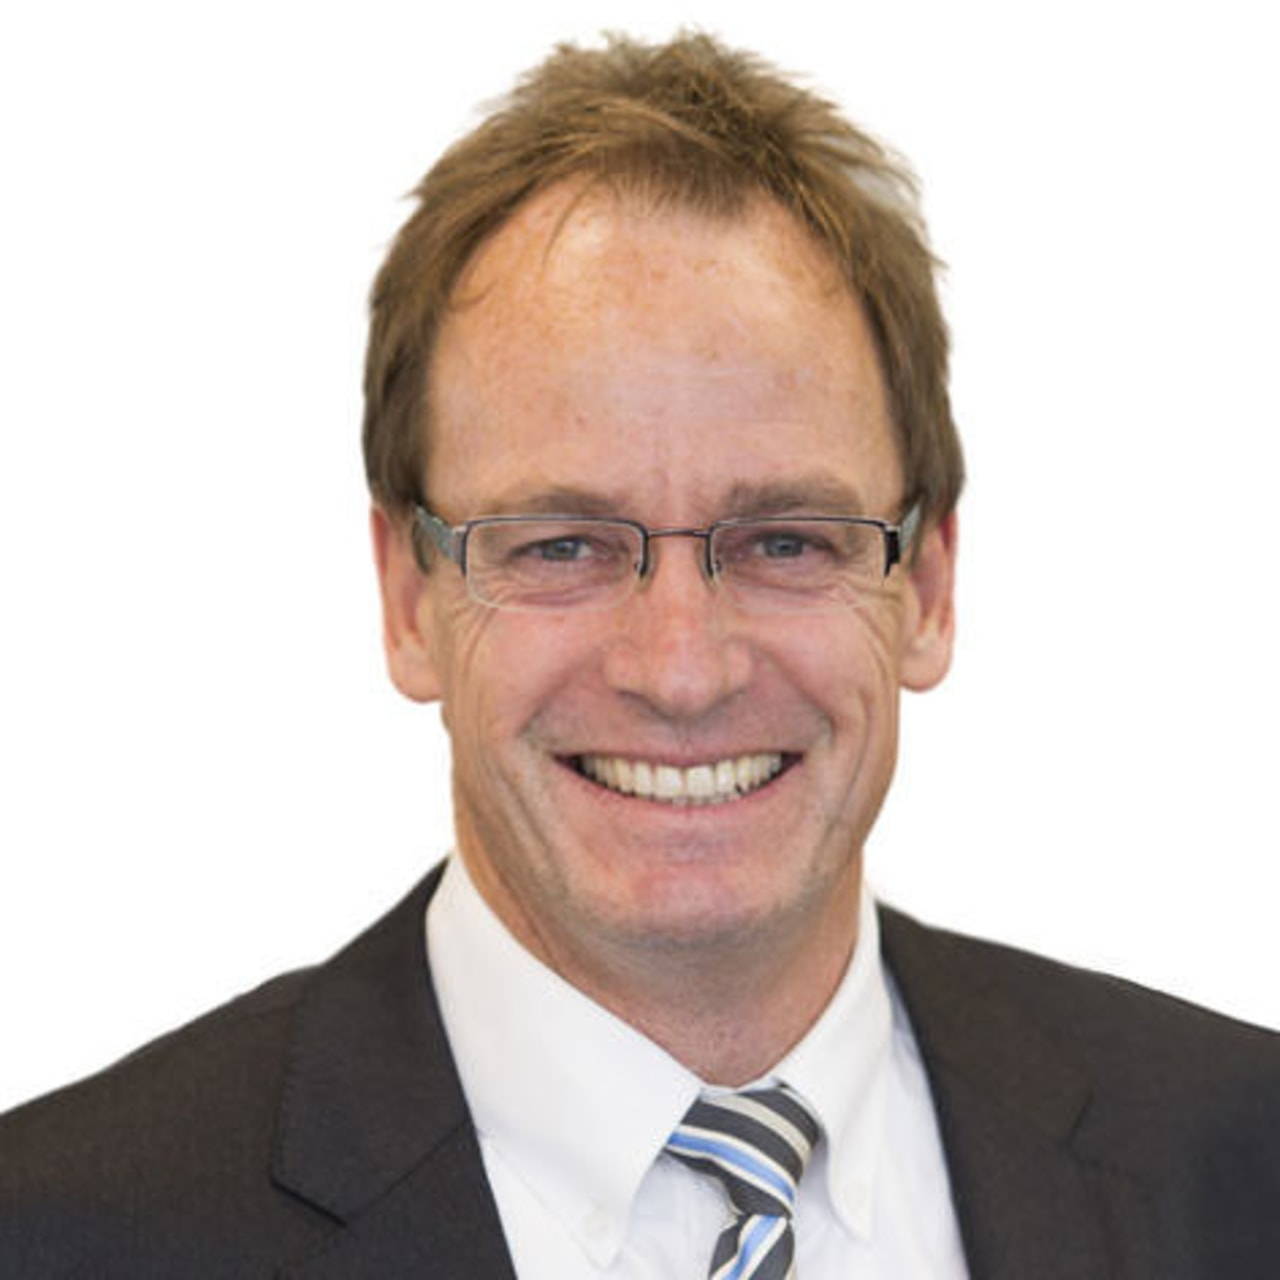 Keith Paterson, Beca business director for the Canterbury business executive, businessperson, chin, elder, entrepreneur, executive officer, forehead, glasses, official, person, profession, professional, senior citizen, smile, spokesperson, vision care, white collar worker, white